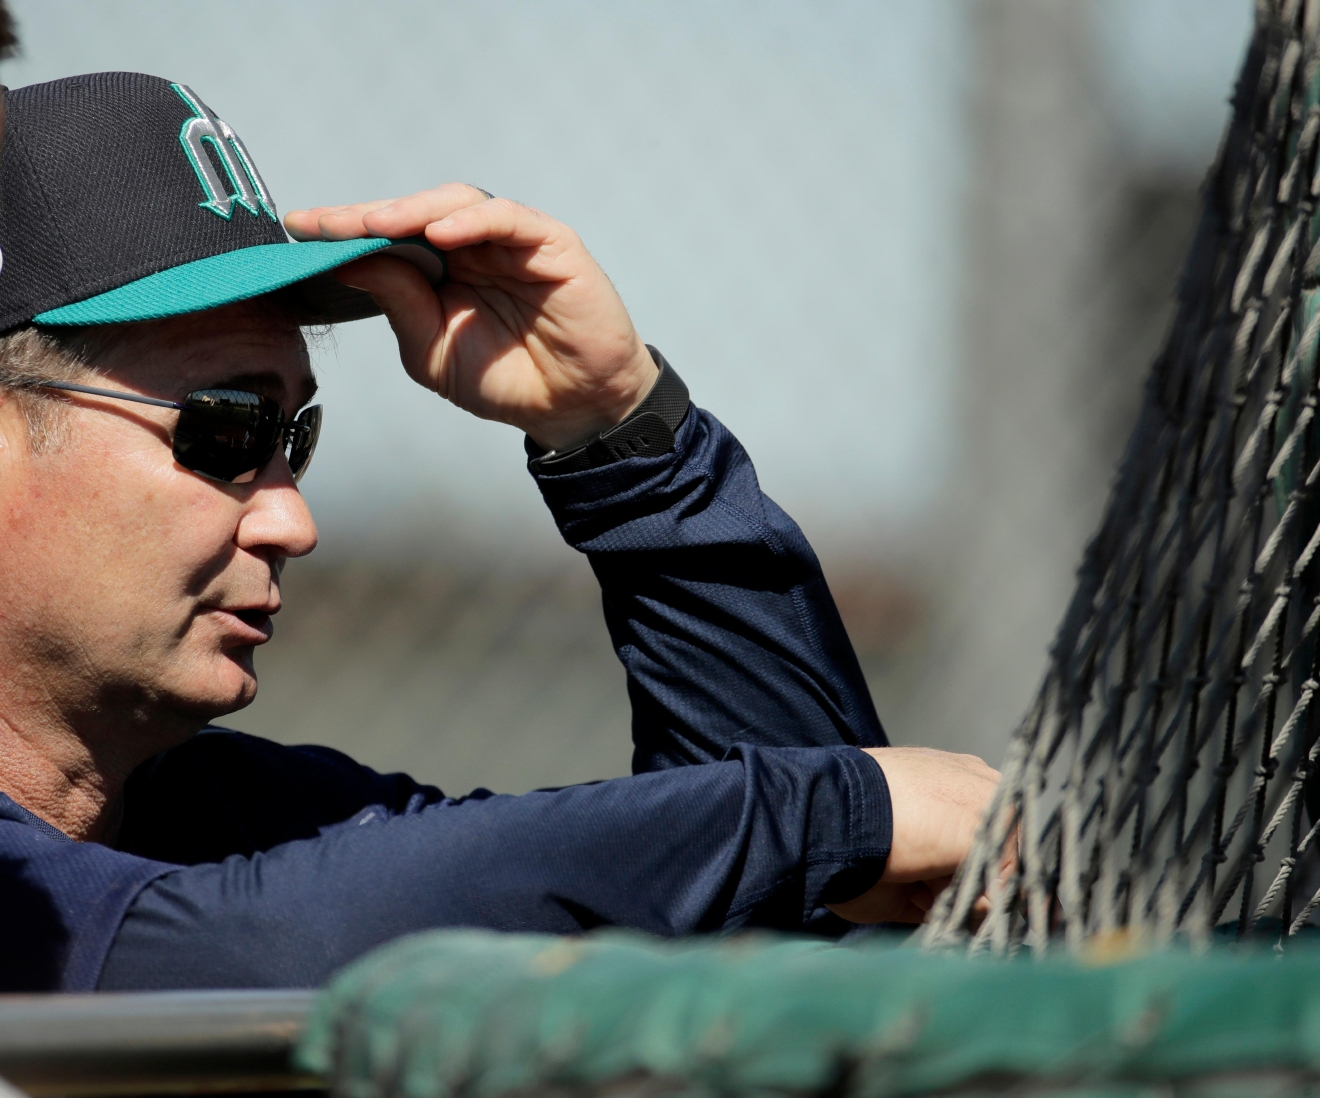 Seattle Mariners manager Scott Servais watches batting practice during spring training baseball practice, Tuesday, Feb. 21, 2017, in Peoria, Ariz. (AP Photo/Charlie Riedel)